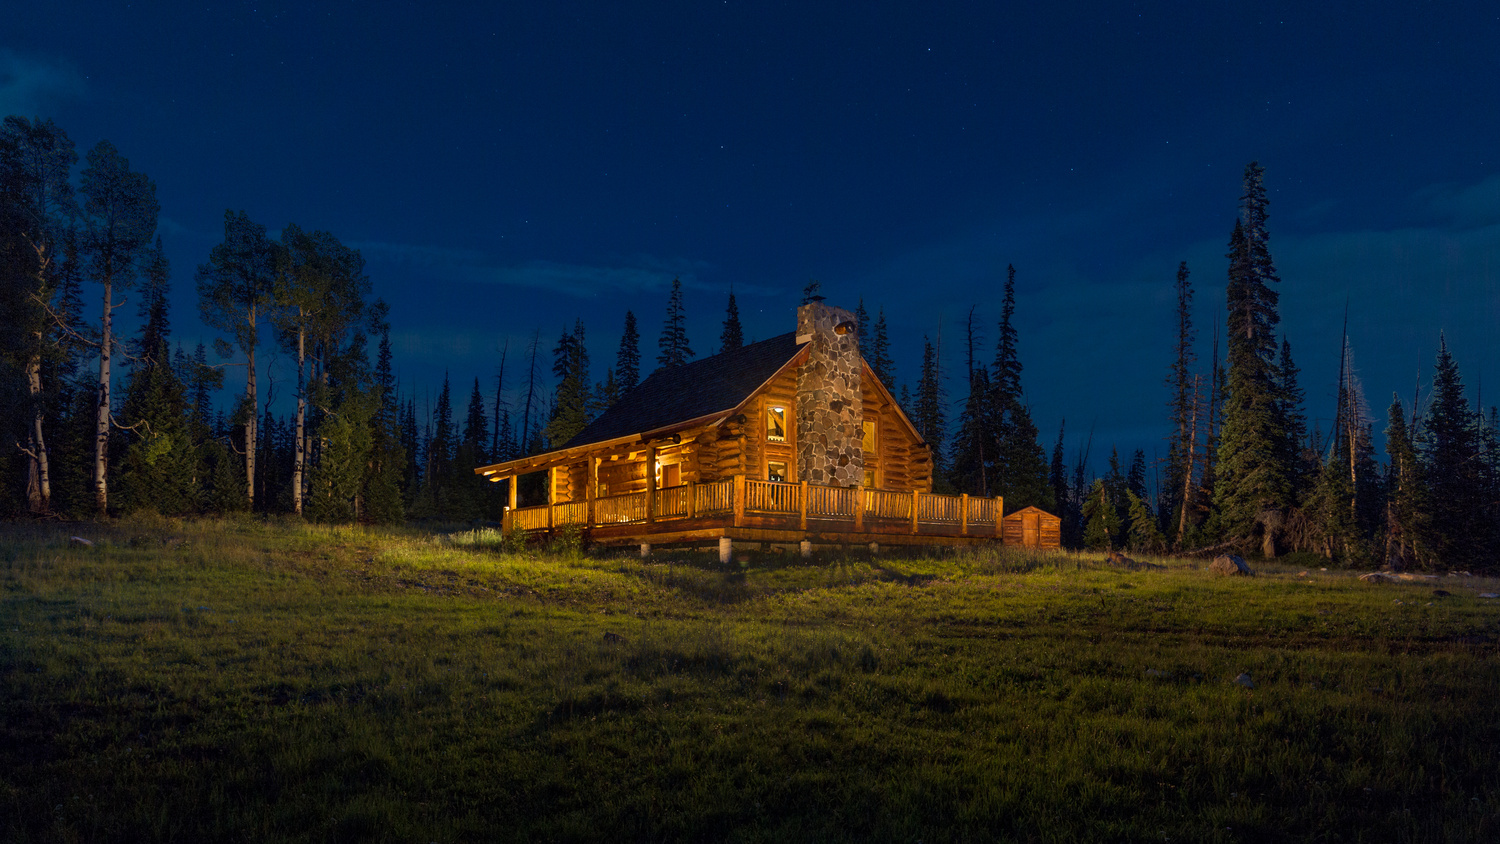 Log Cabin Twilight - Brian Head, Utah by Fraser Almeida